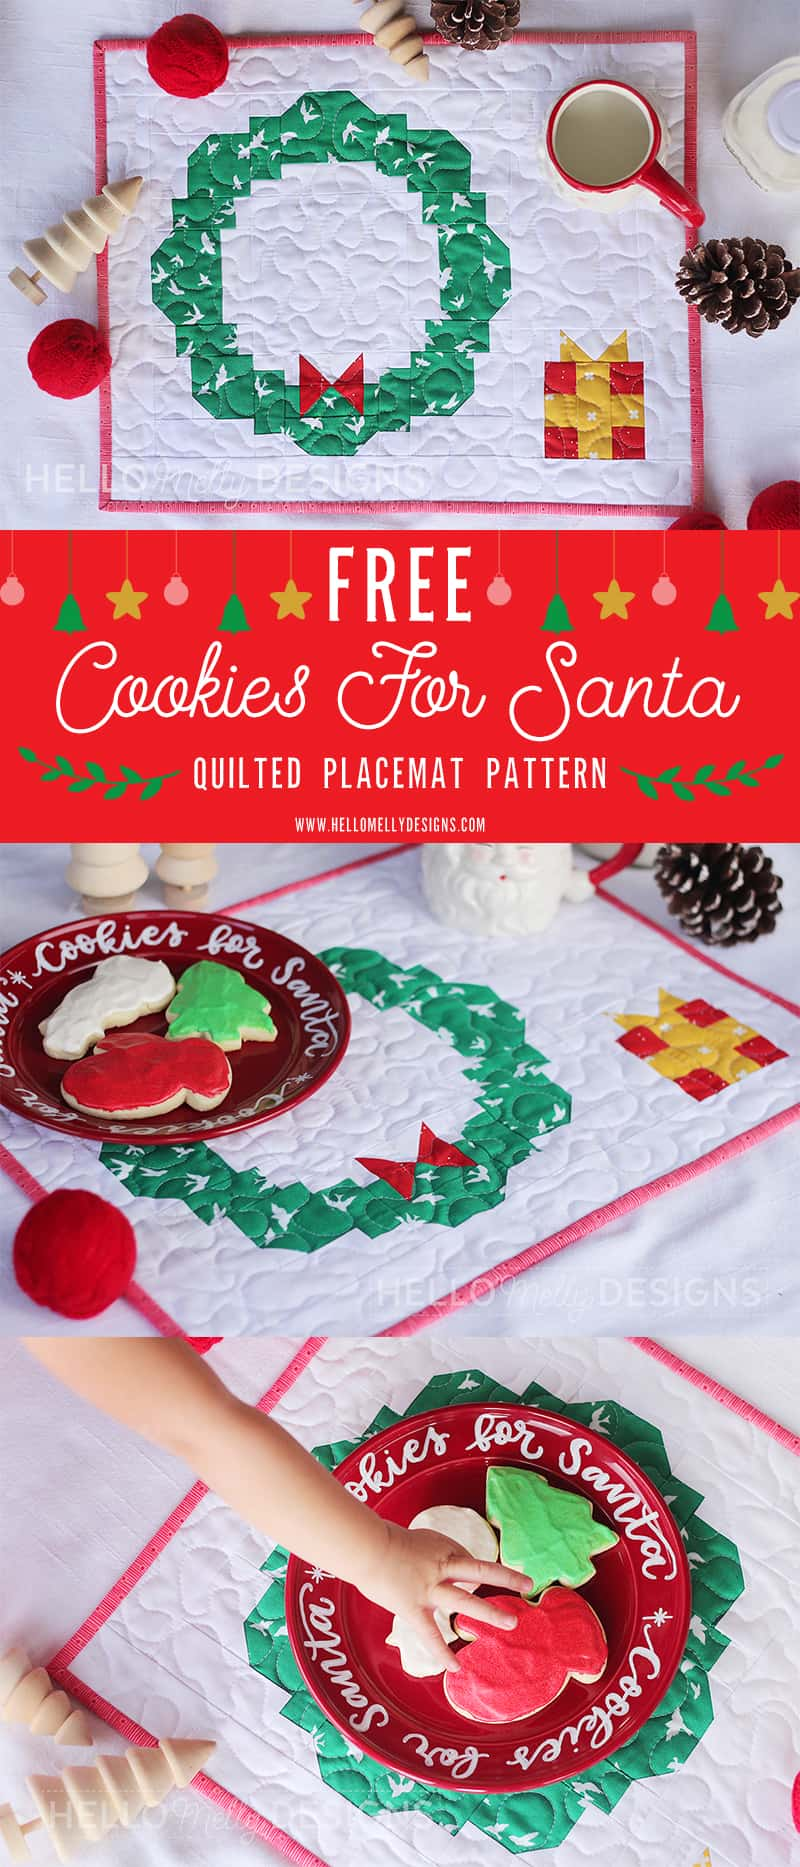 free-cookies-for-santa-quilted-placemat-pattern